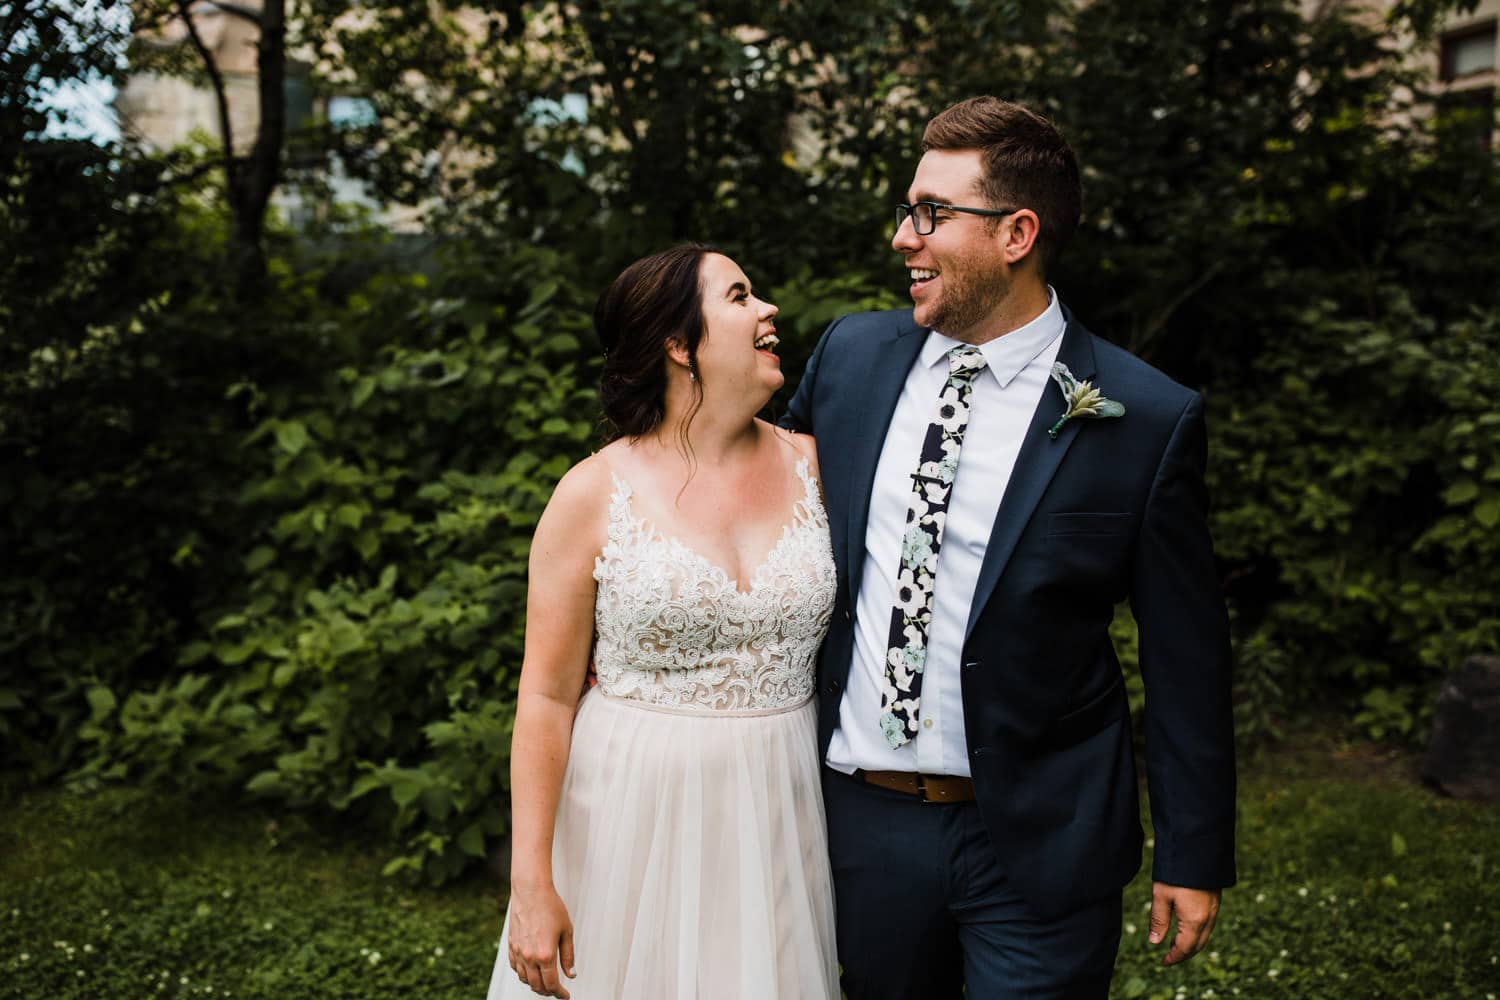 bride and groom laugh together - downtown ottawa wedding